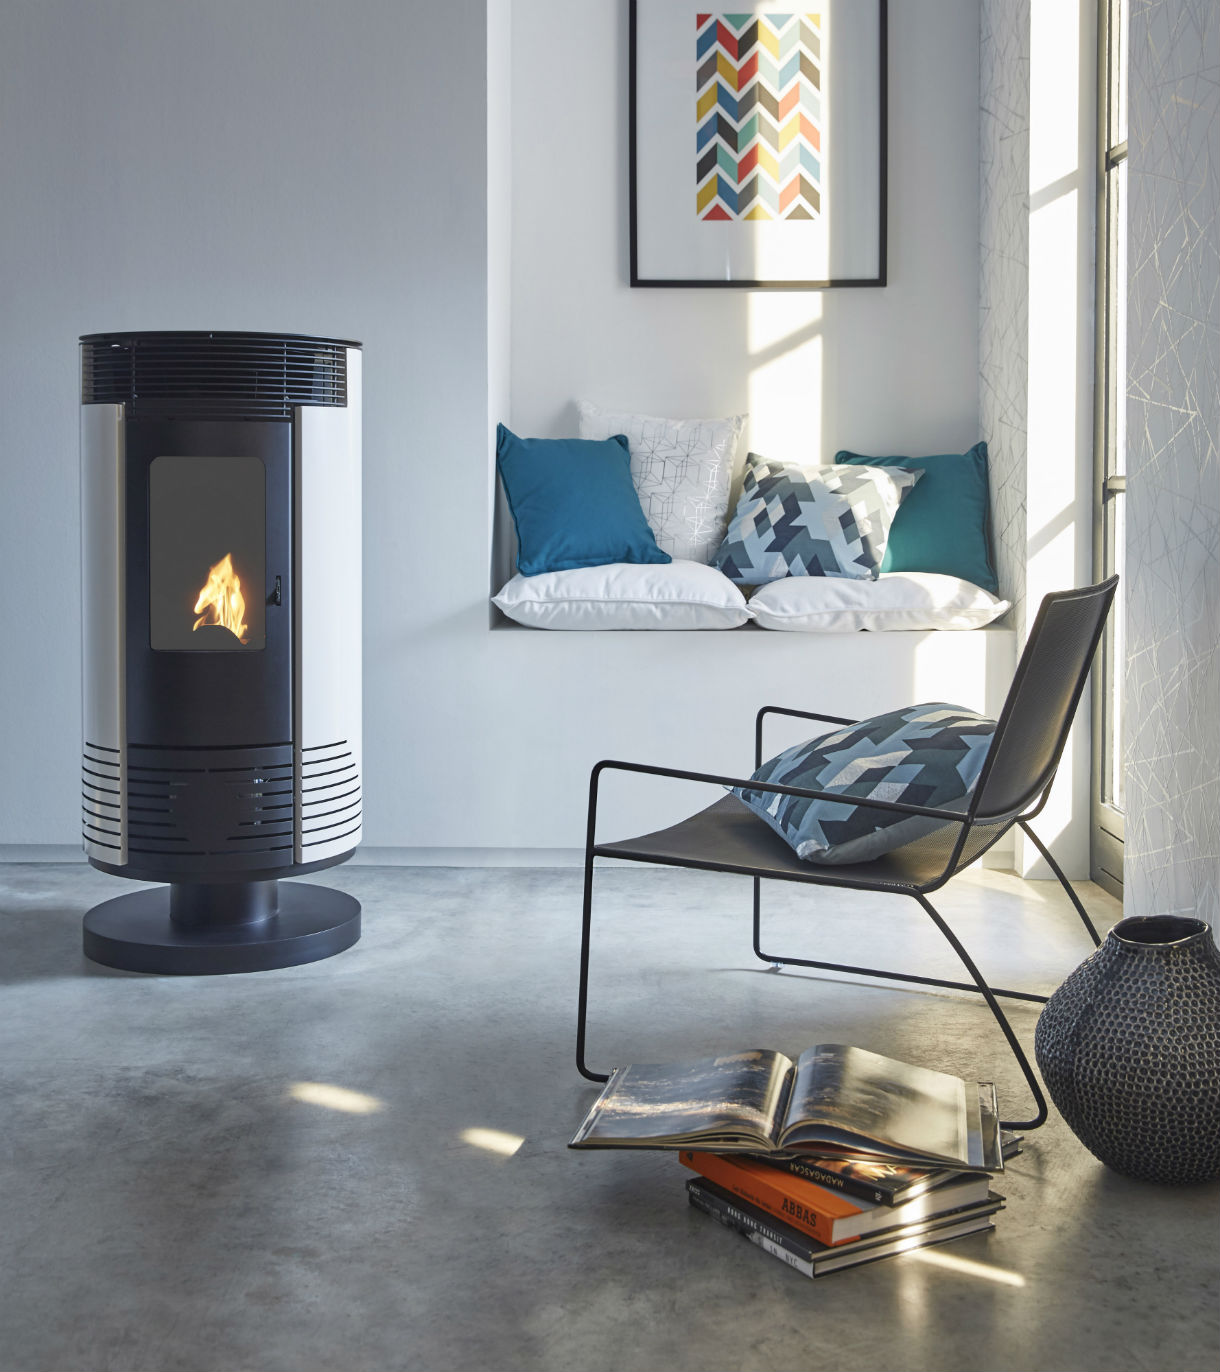 Cheminée Double Combustion Poele A Bois Design Et Contemporain Nos Suggestions